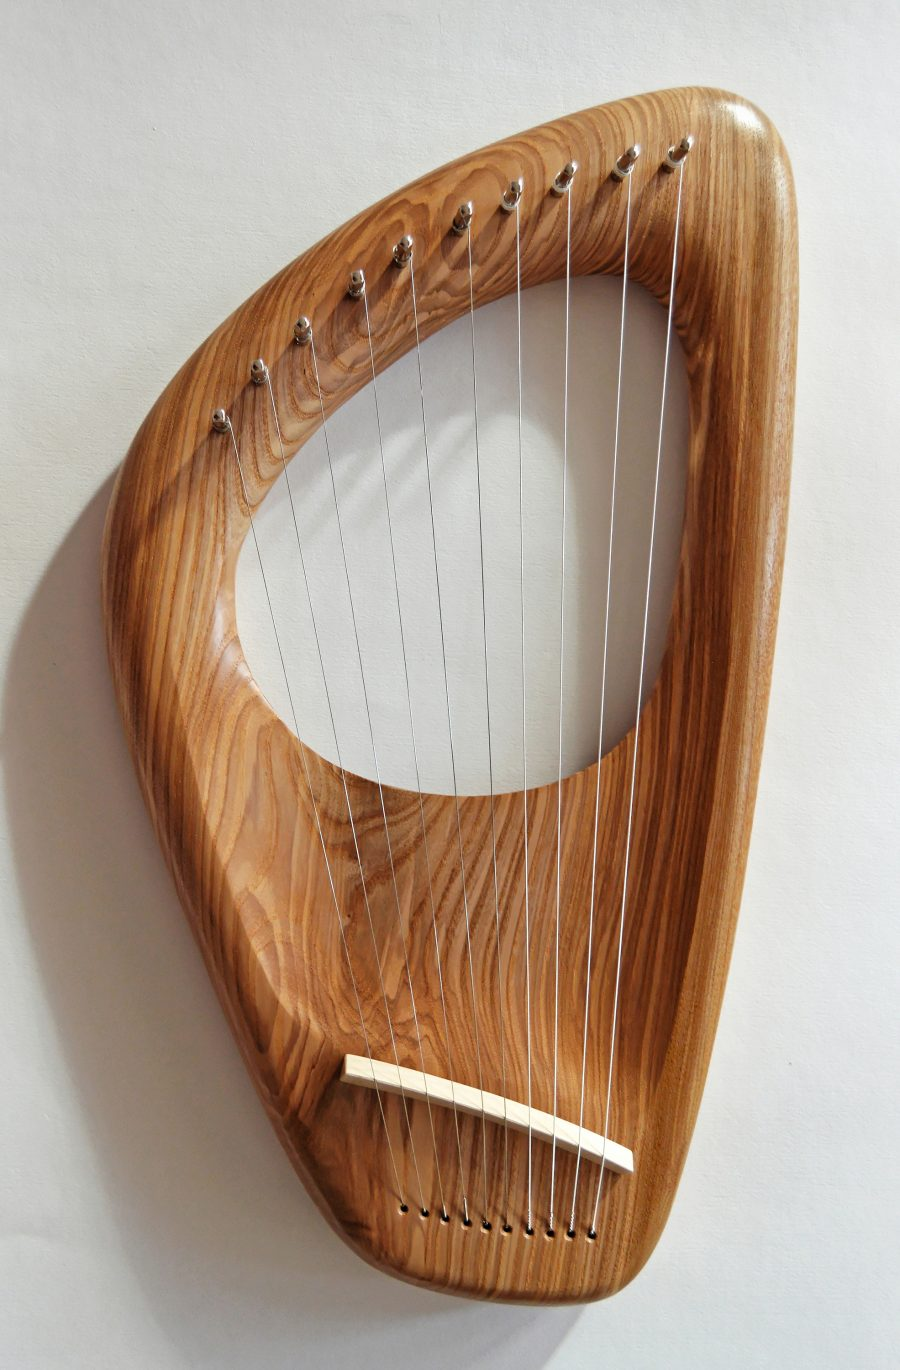 10 String Pentatonic Lyre, Ash Wood, Hand crafted